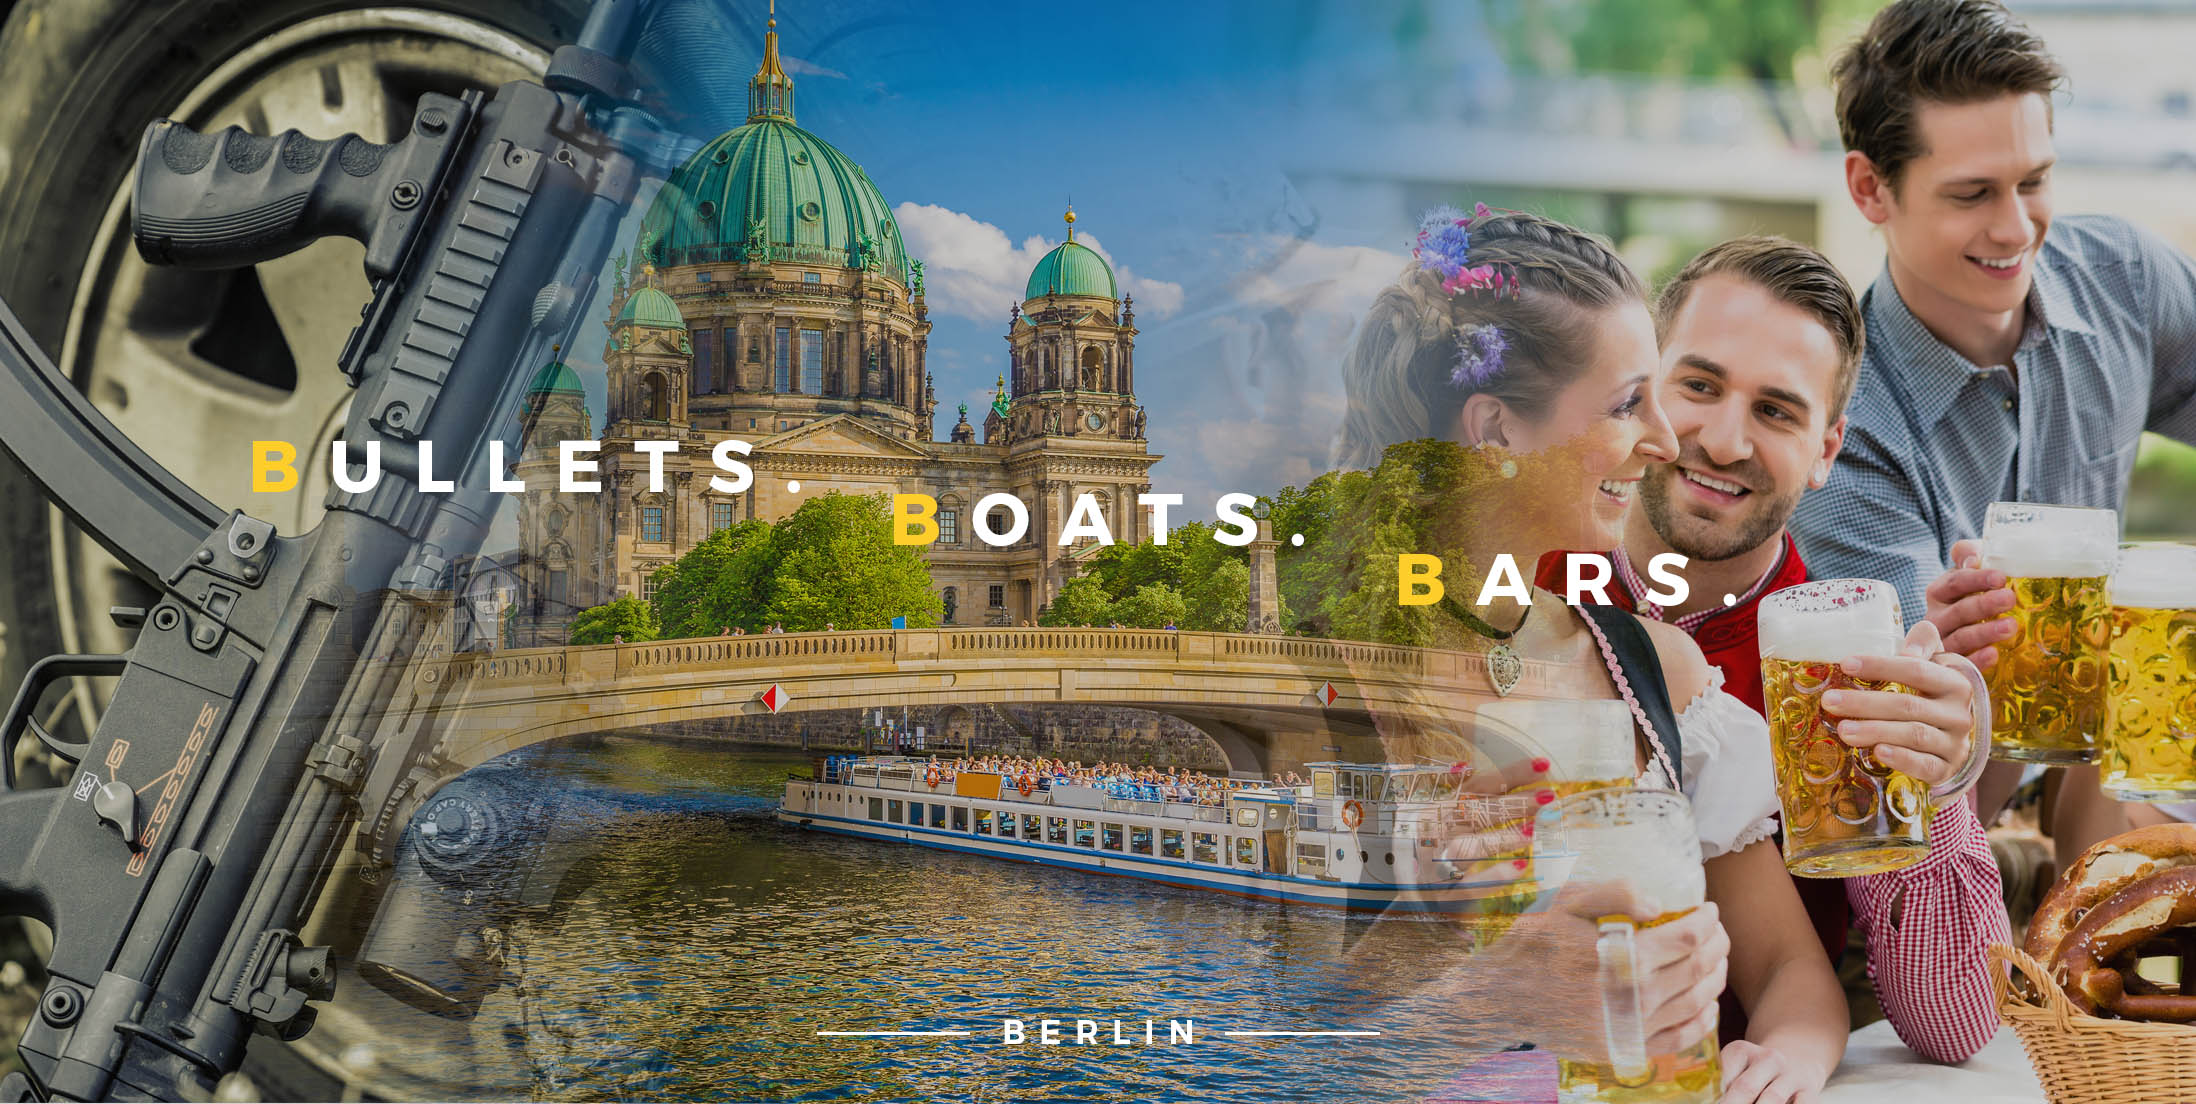 Bullets, Boats and Bars in Berlin